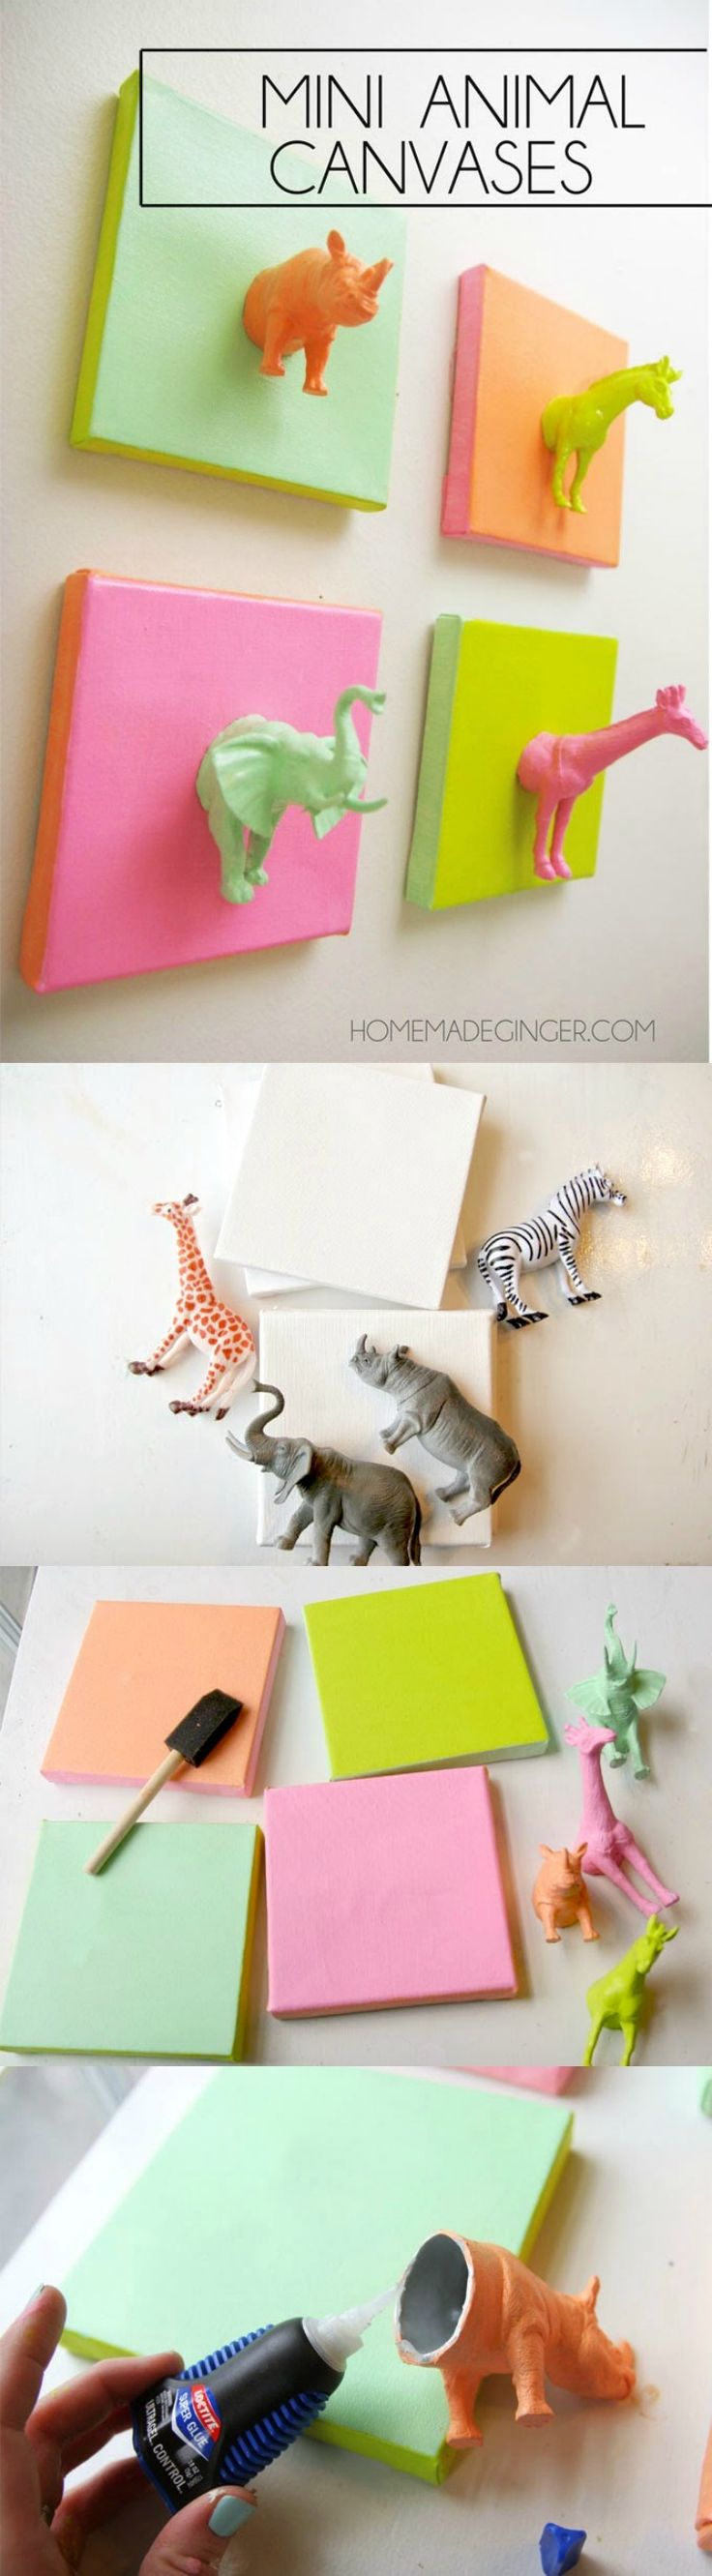 EASY DIY Canvas Art with Plastic Animals